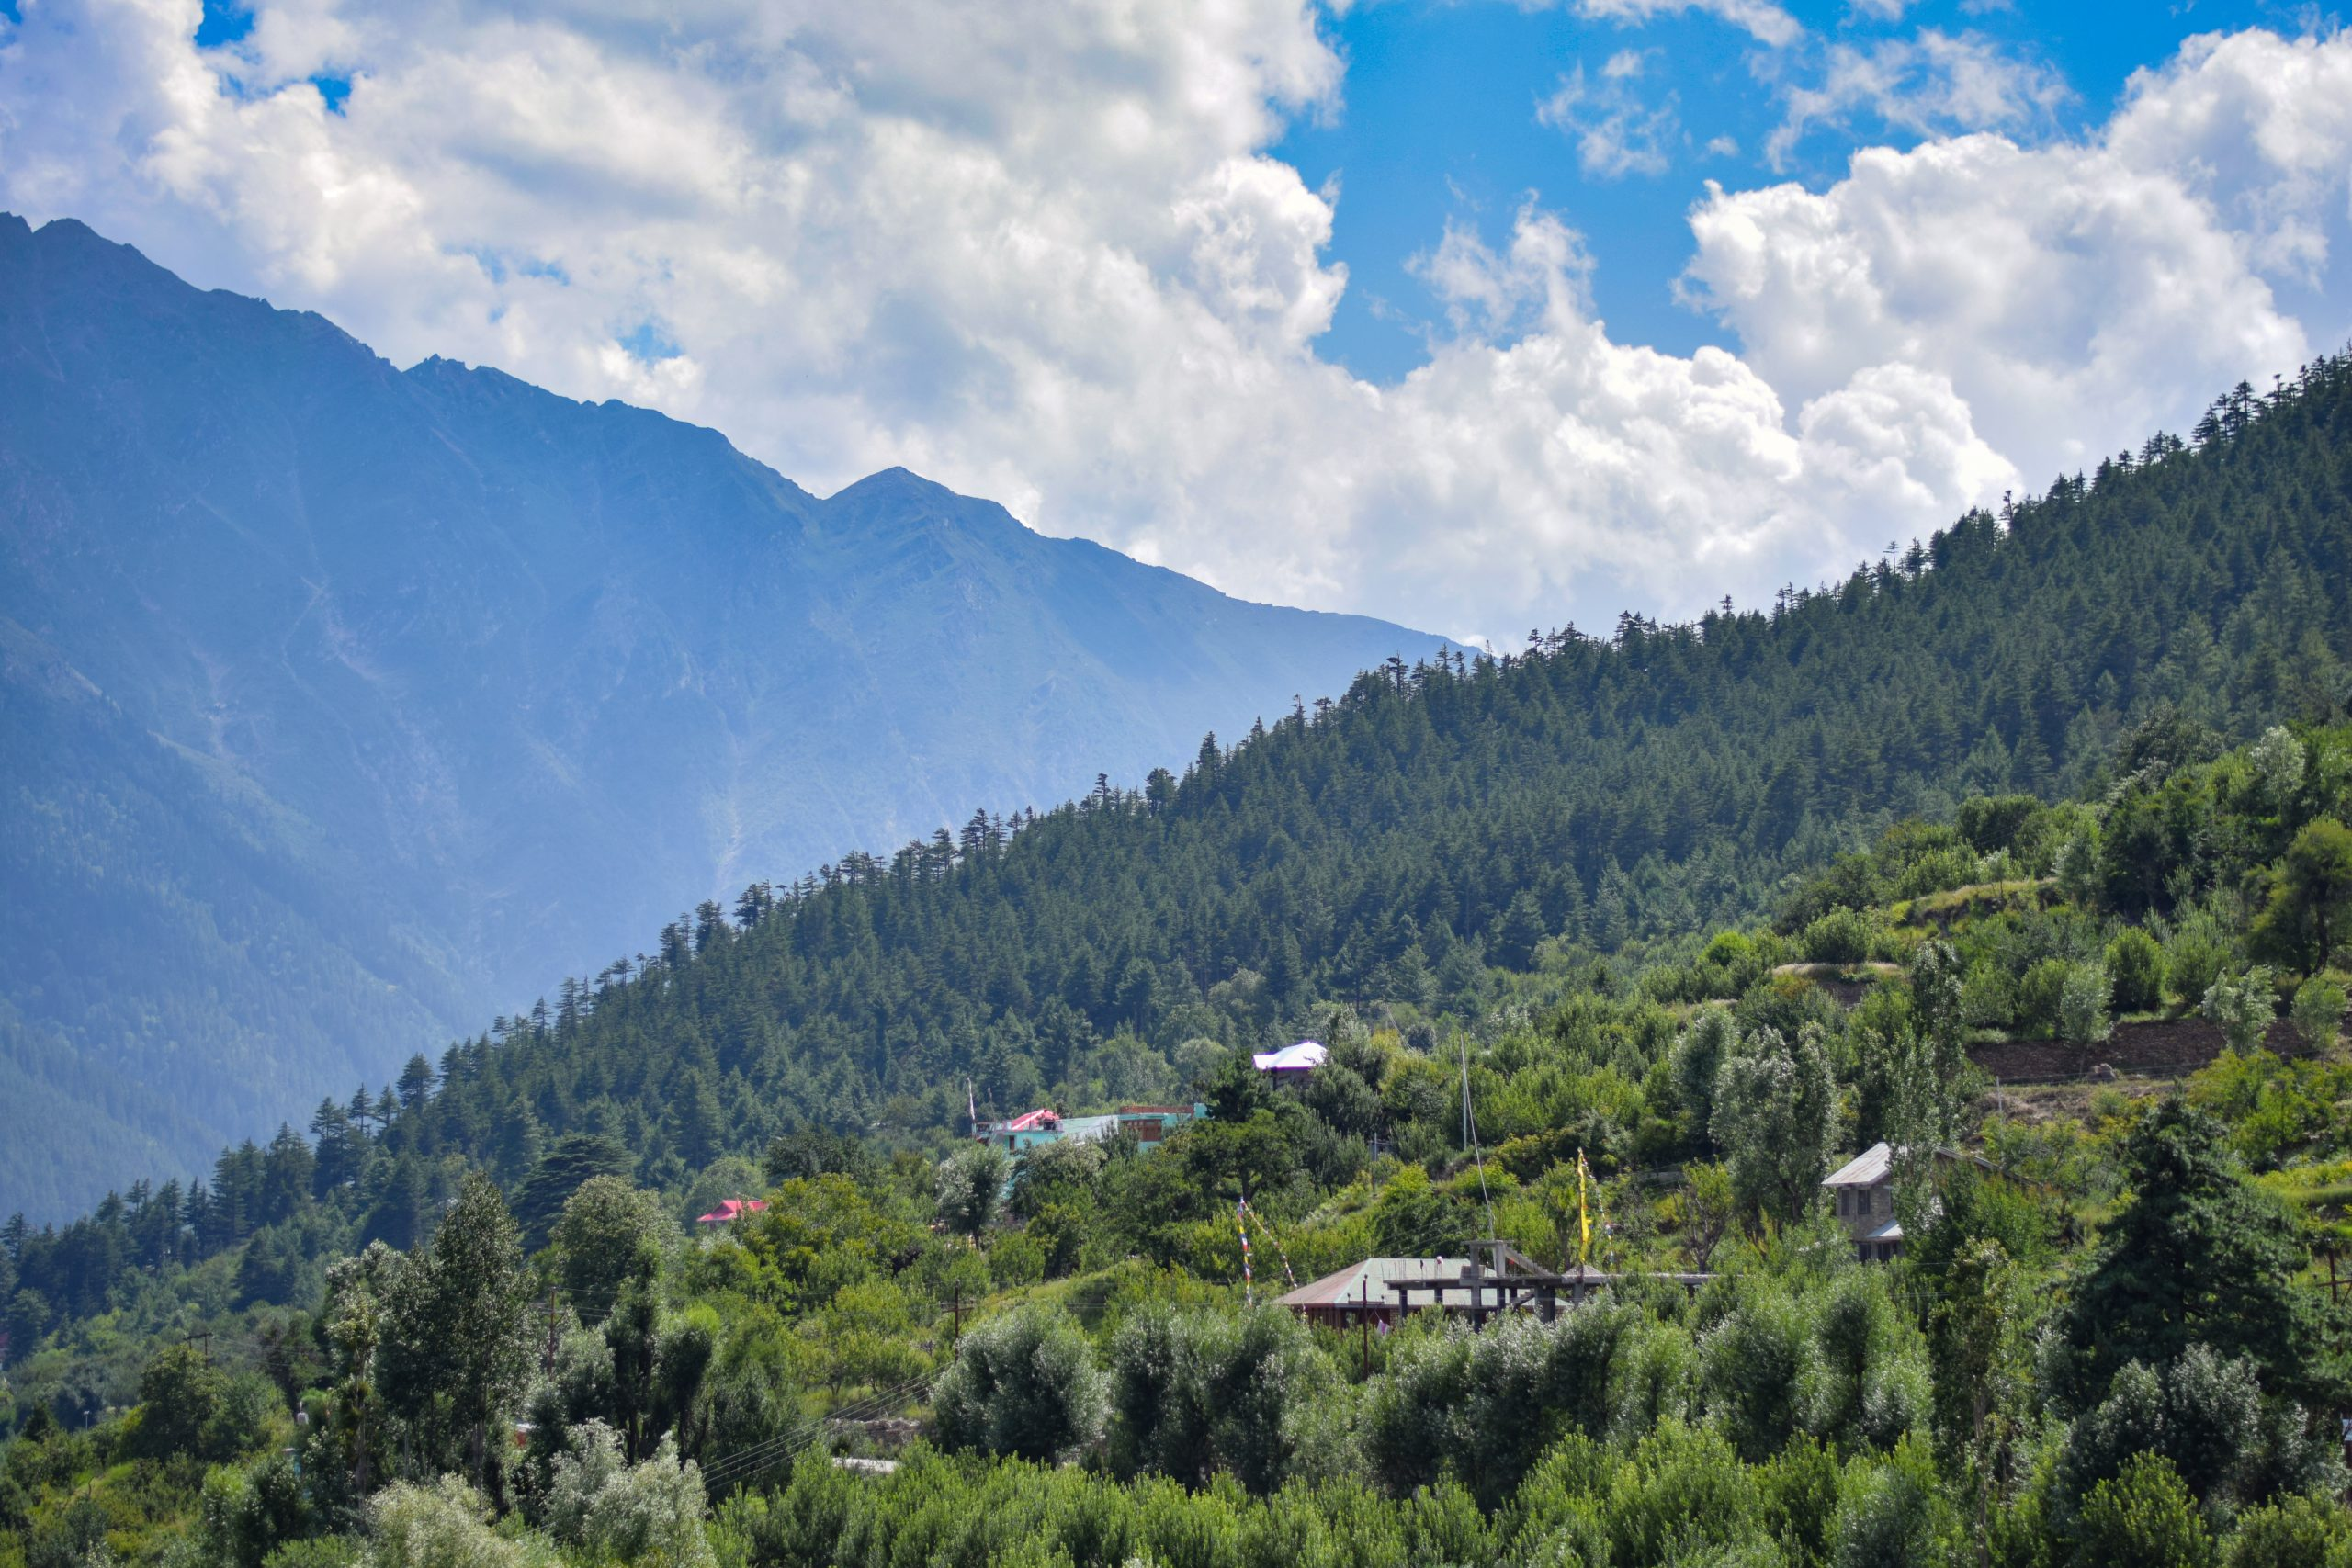 Trees and greenery of mountain slope